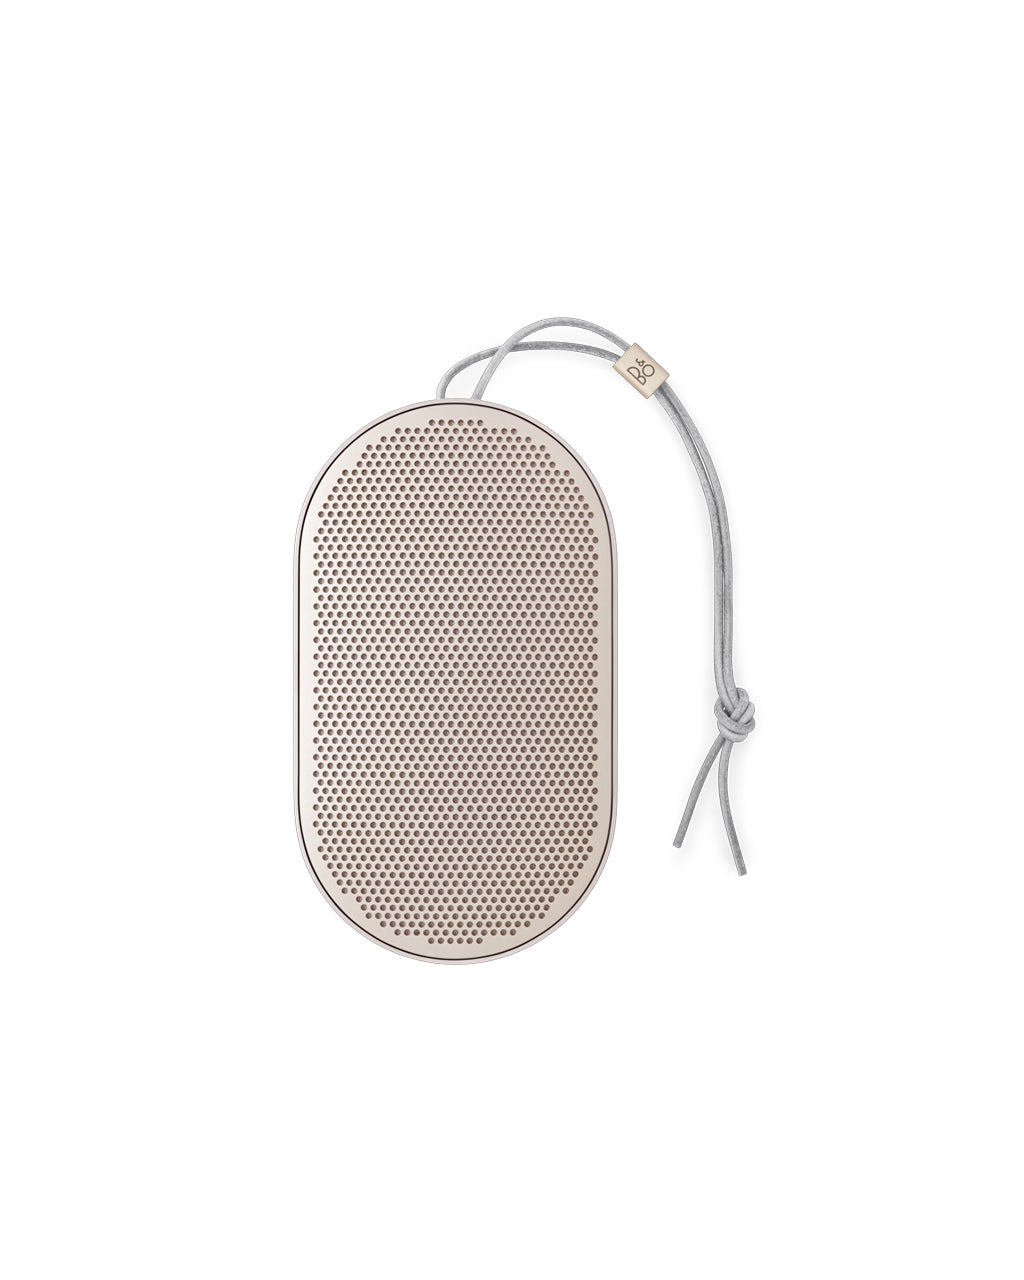 B&O PLAY ACCESSORIES SAND O/S P2 B&O PLAY PORTABLE BLUETOOTH SPEAKER